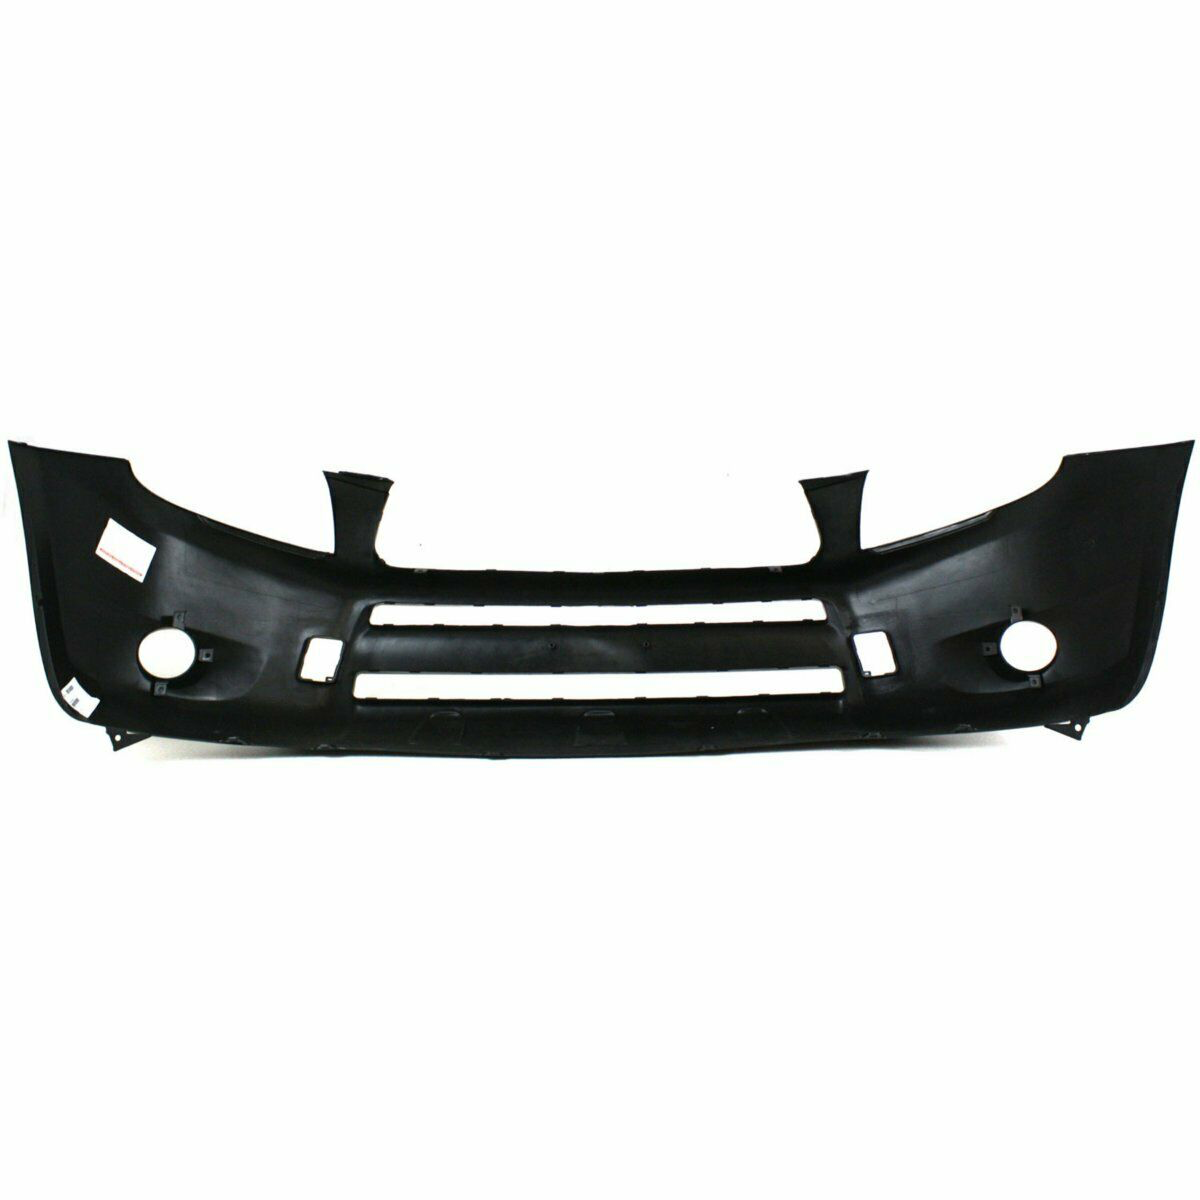 2006-2008 Toyota Rav4 Front Bumper w/o Flare holes Painted to Match